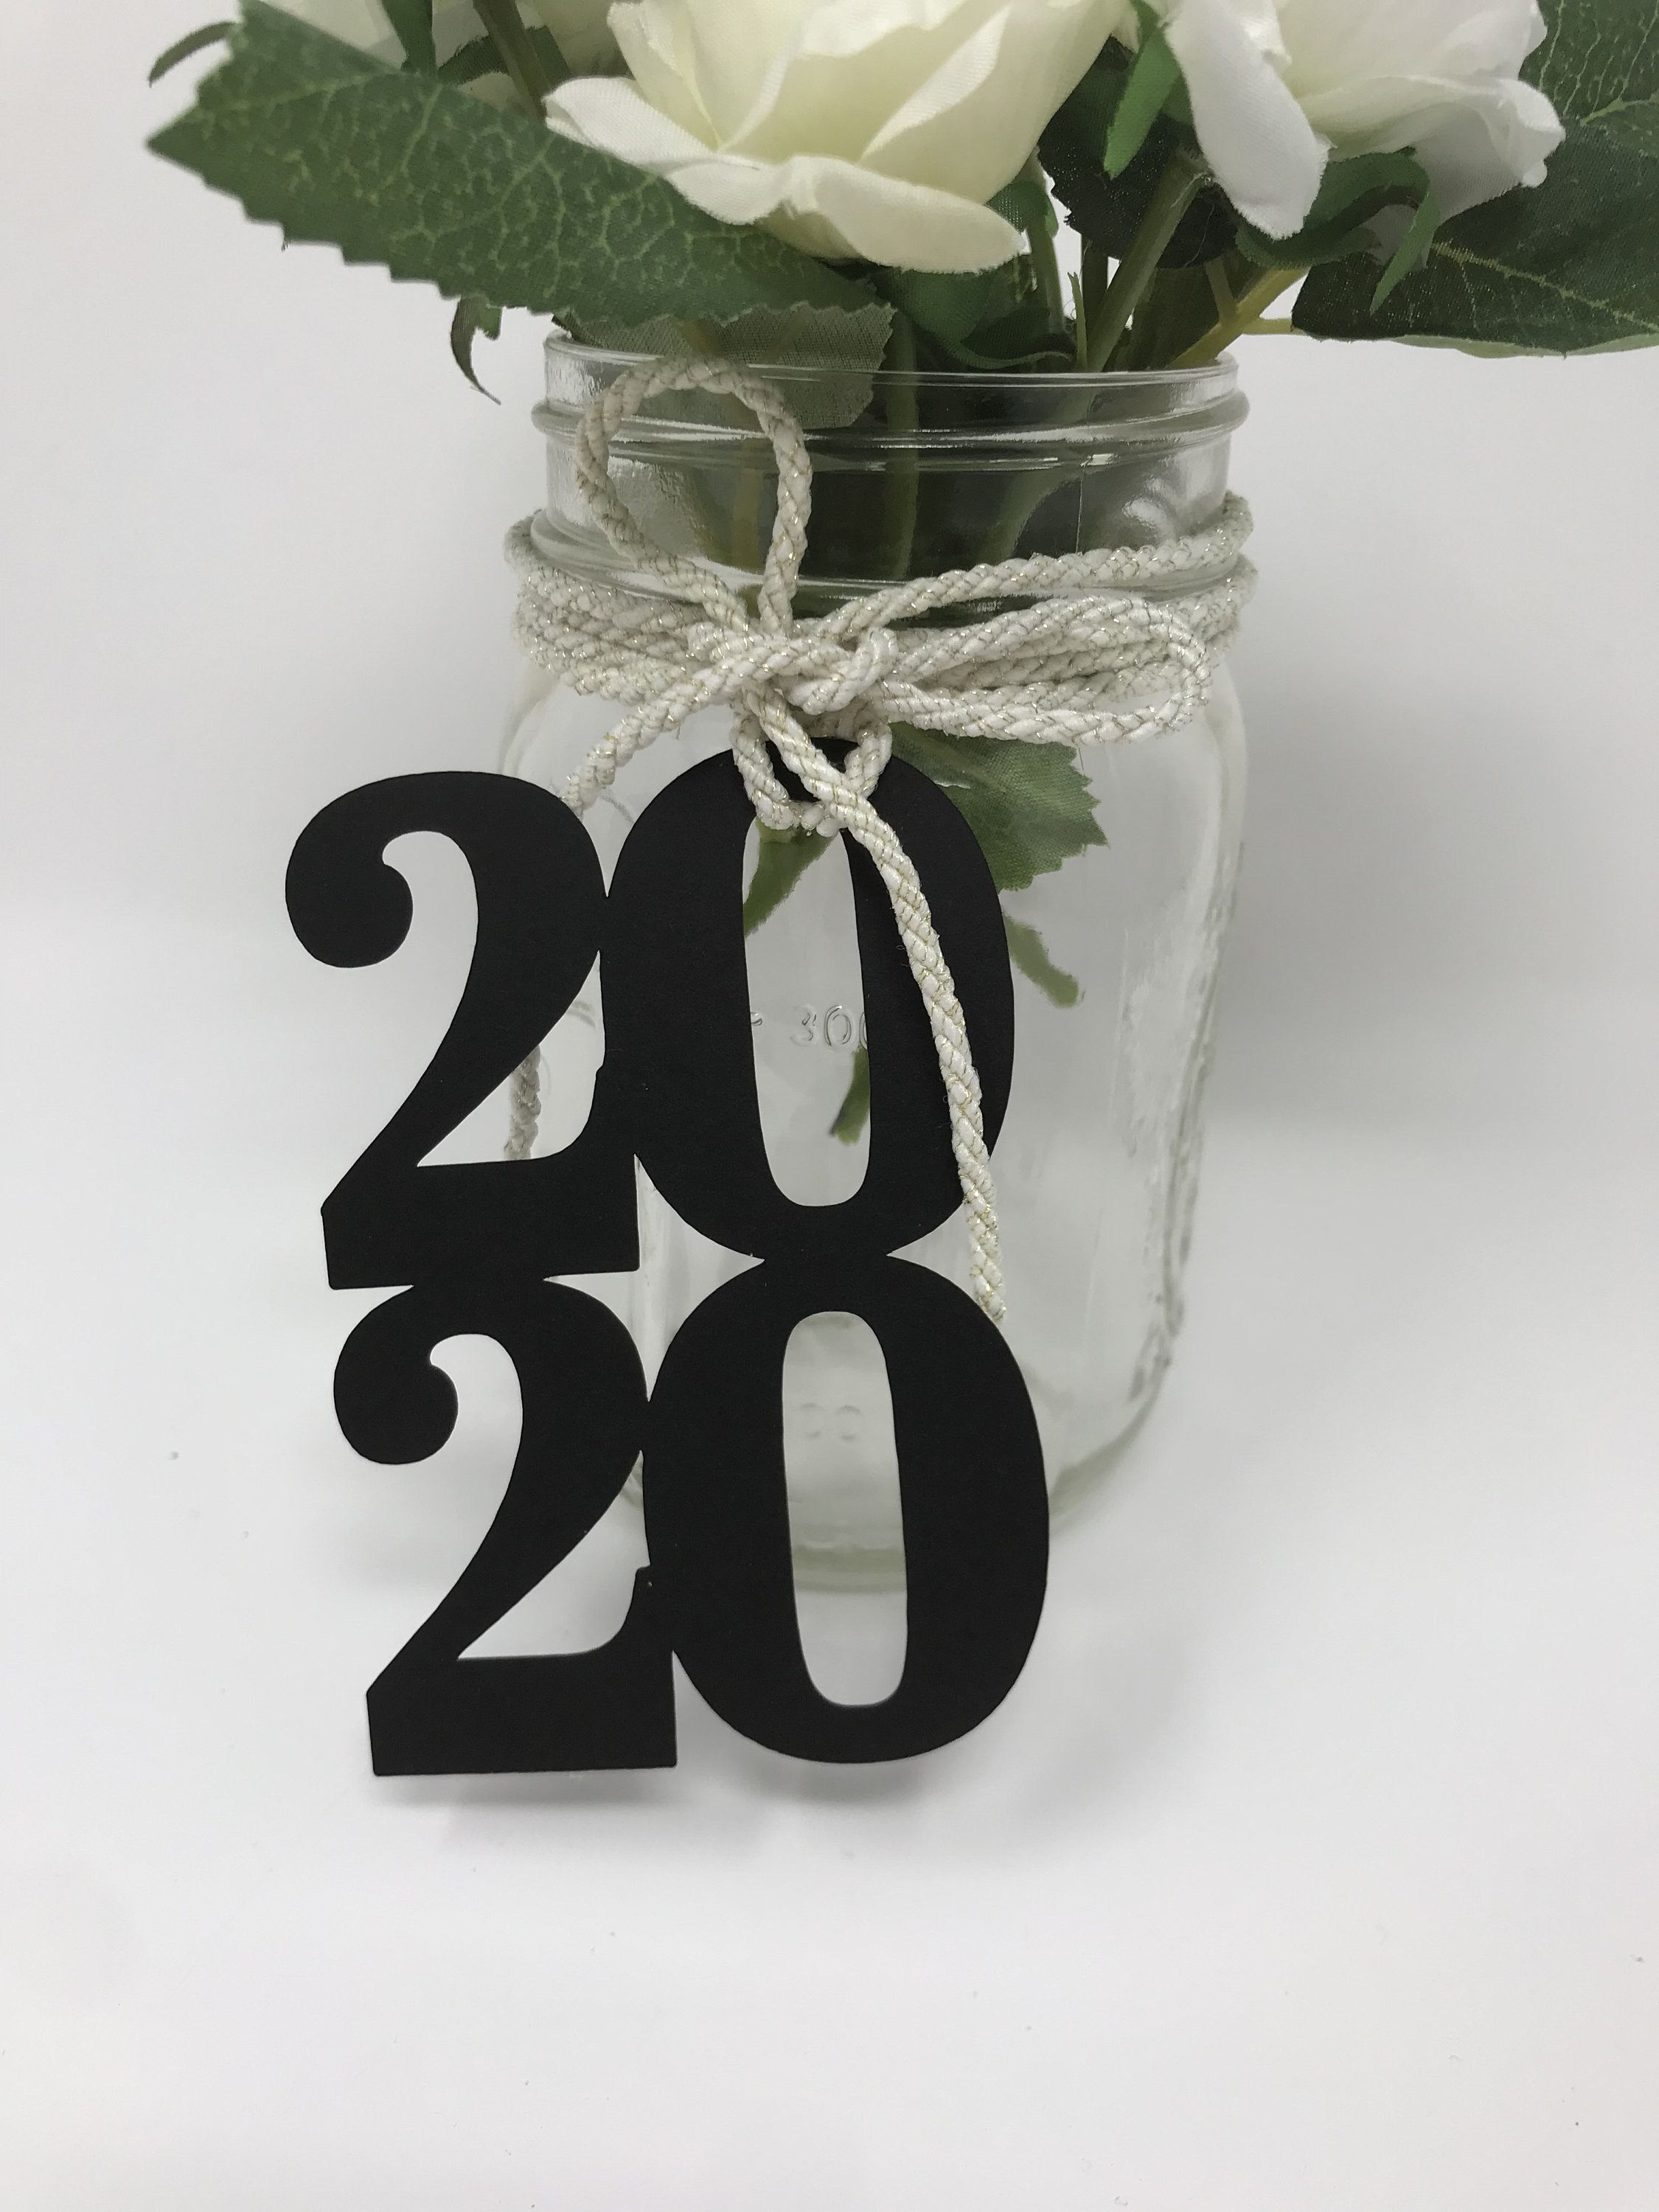 Graduation party decorations 2020 – table decorations – Class of 2020 – Graduation party Centerpiece – 2020 Graduation Tags